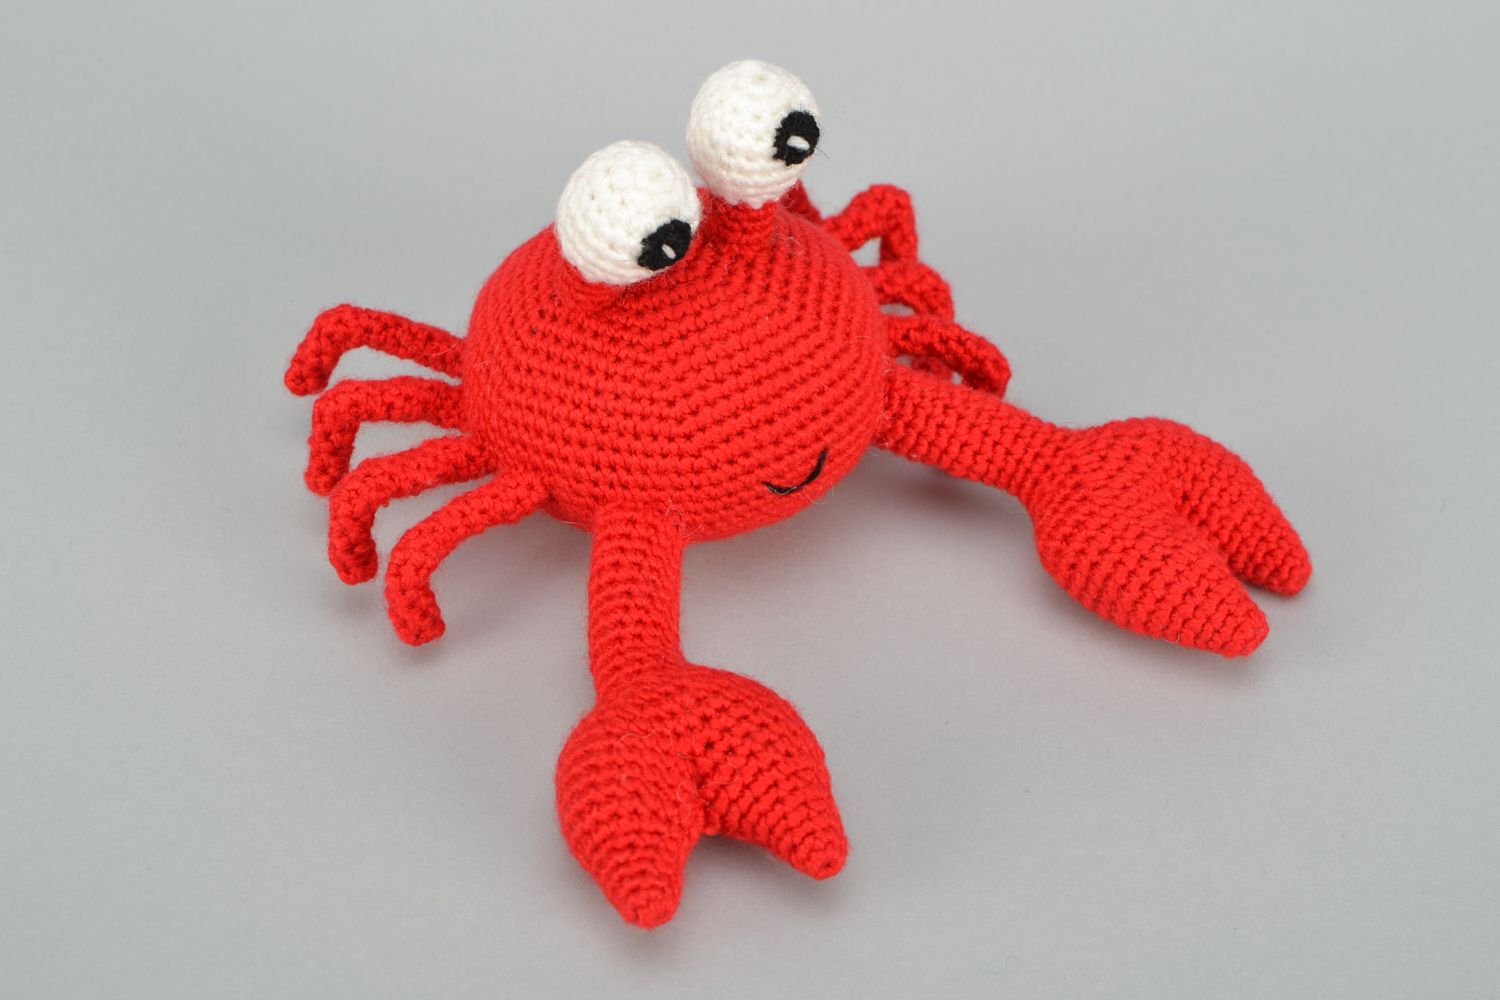 knitted toys Handmade soft crochet toy Crab - MADEheart.com